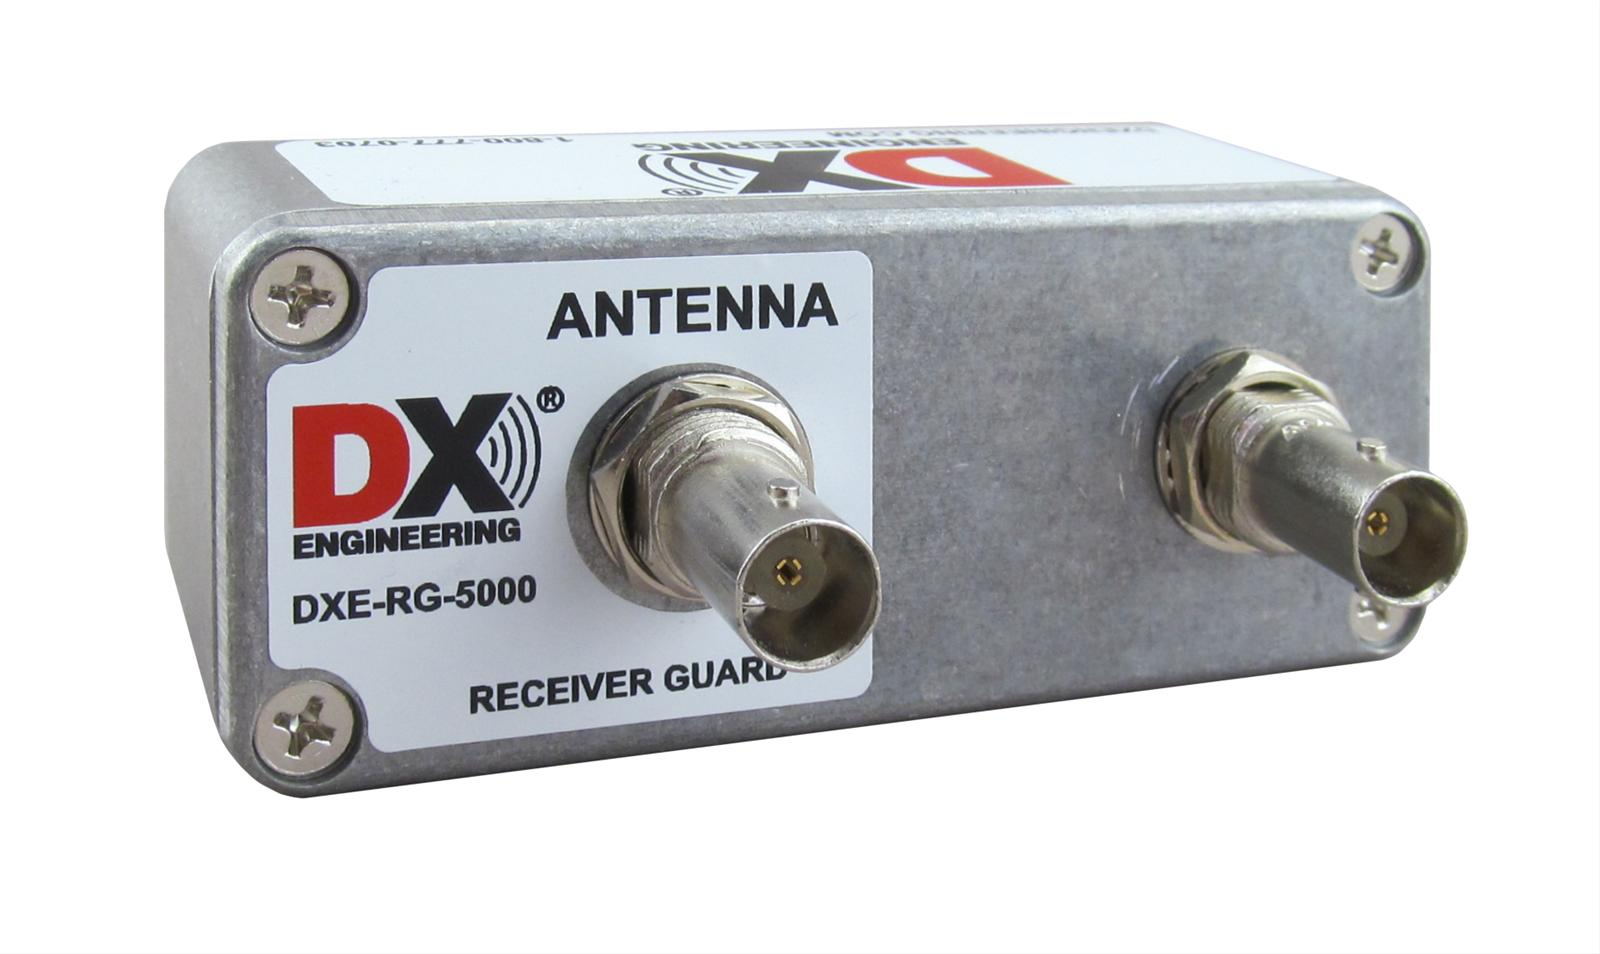 DX Engineering Receiver Guard Electronic RF Limiters DXE-RG-5000